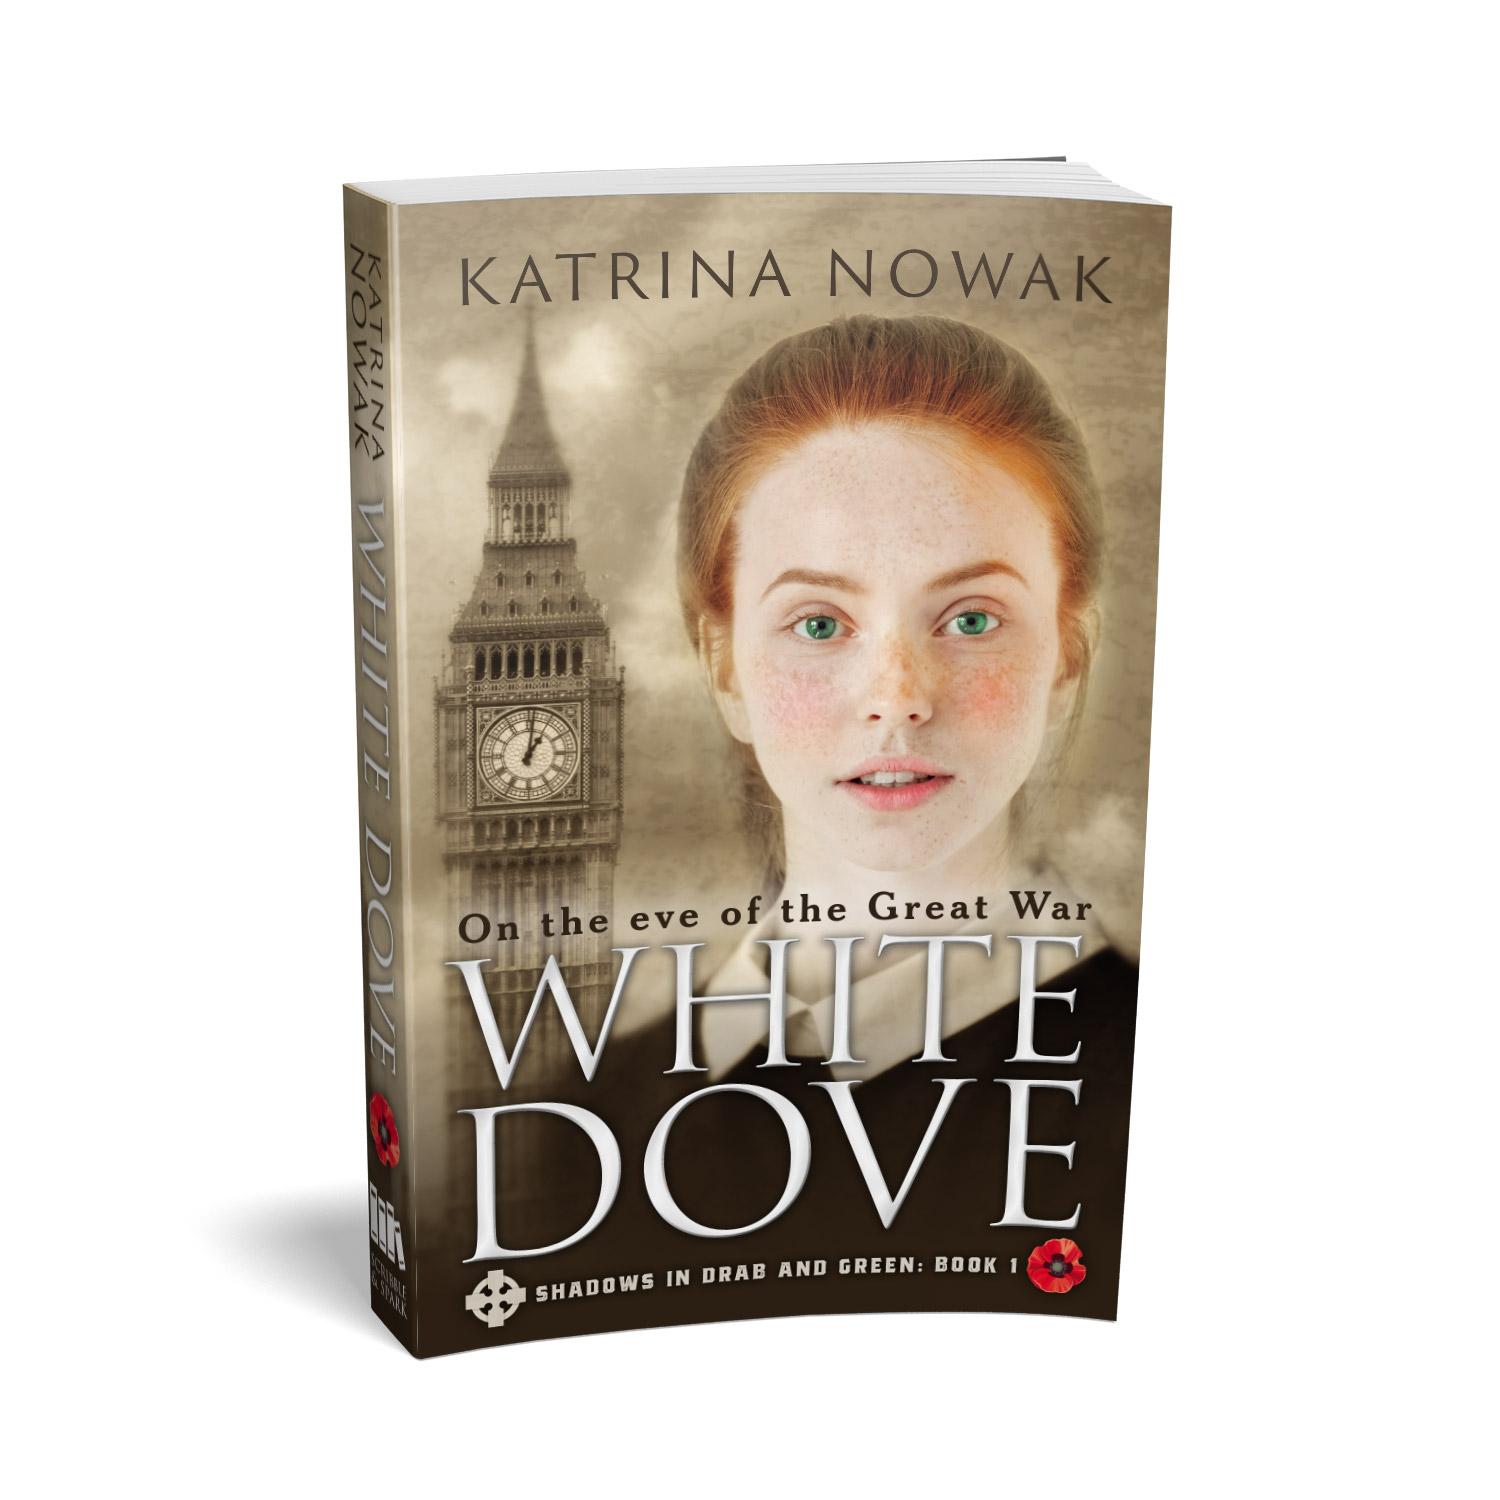 'White Dove' is a sweeping historical novel, set on the eve of WW1, by Katrina Nowak. The book cover and interior were designed by Mark Thomas, of coverness.com. To find out more about my book design services, please visit www.coverness.com.